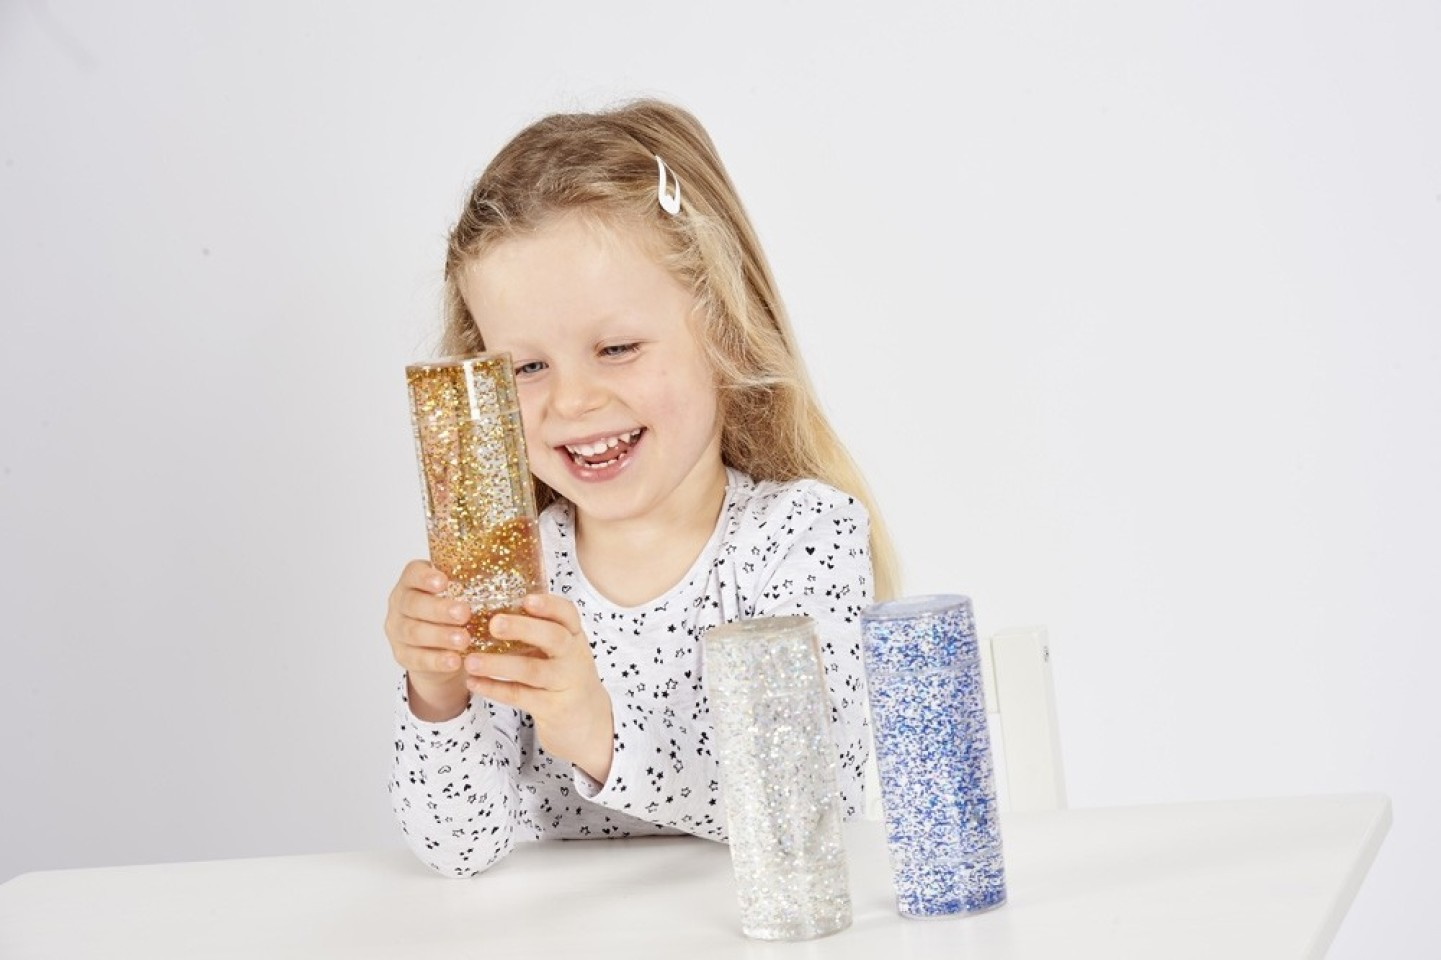 Sensory Glitter Storm Set - Visual Sensory Toy